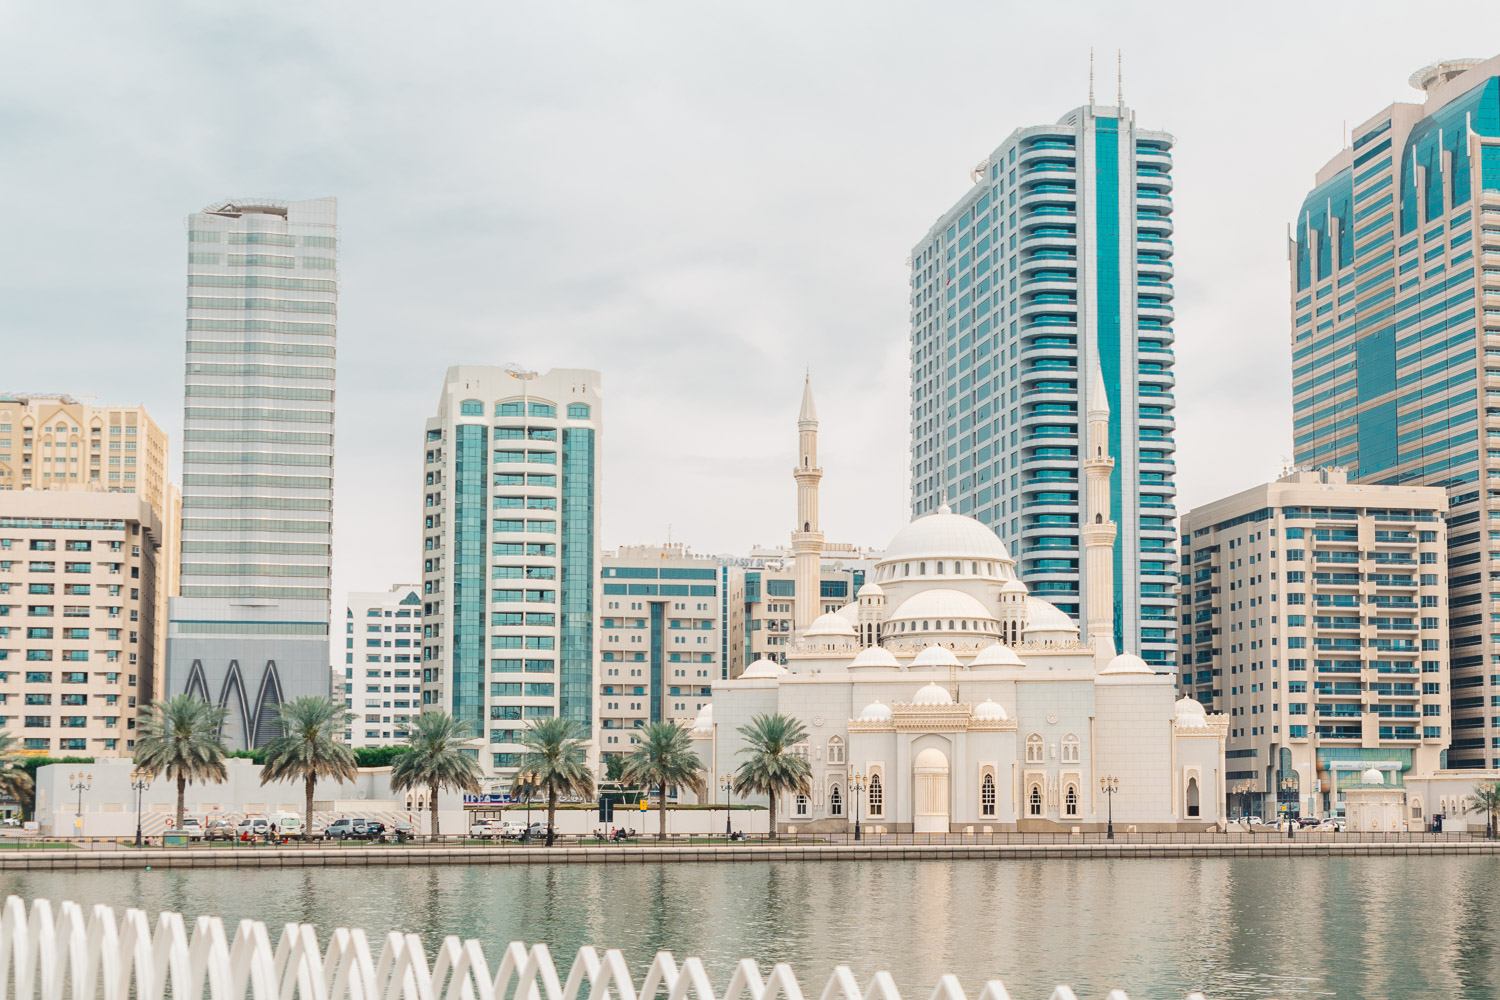 Al Noor Mosque in Sharjah, UAE